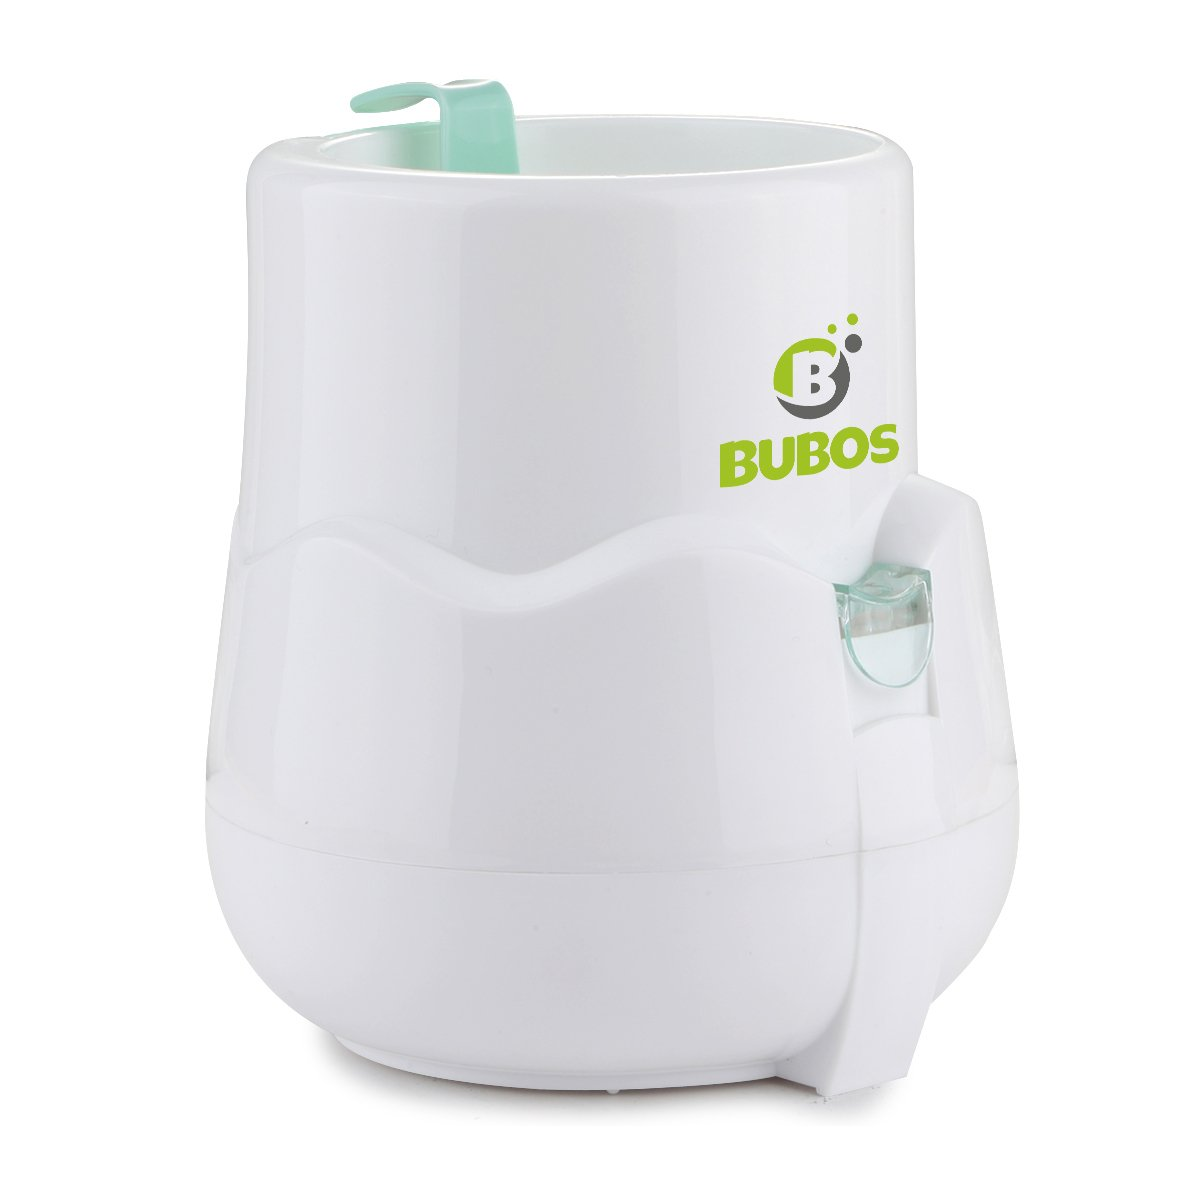 Bubos Smart Baby Bottle Warmer